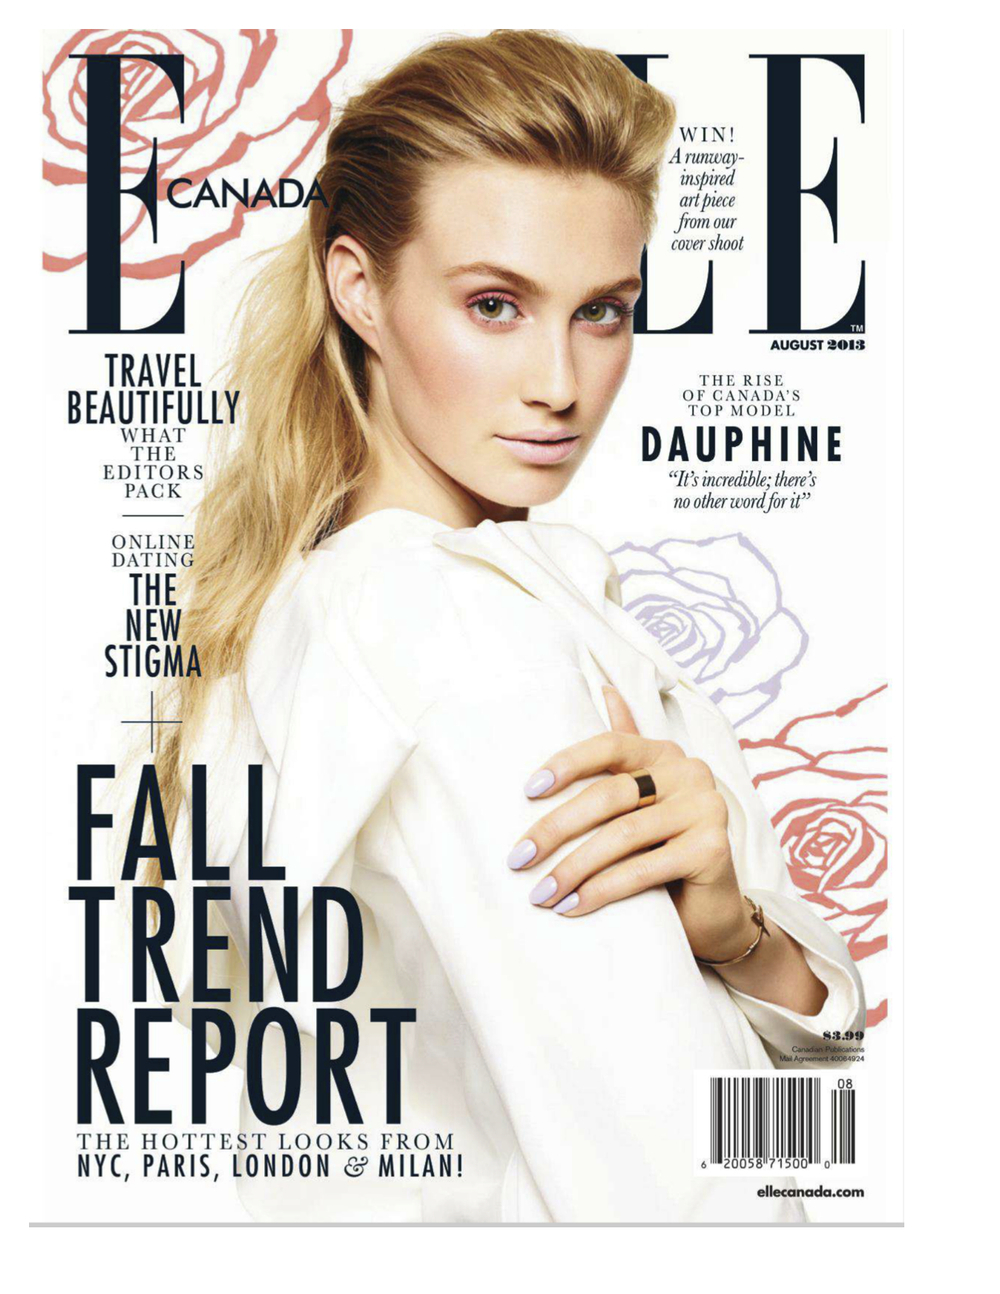 Copy of ElleCanada_August2013.jpg